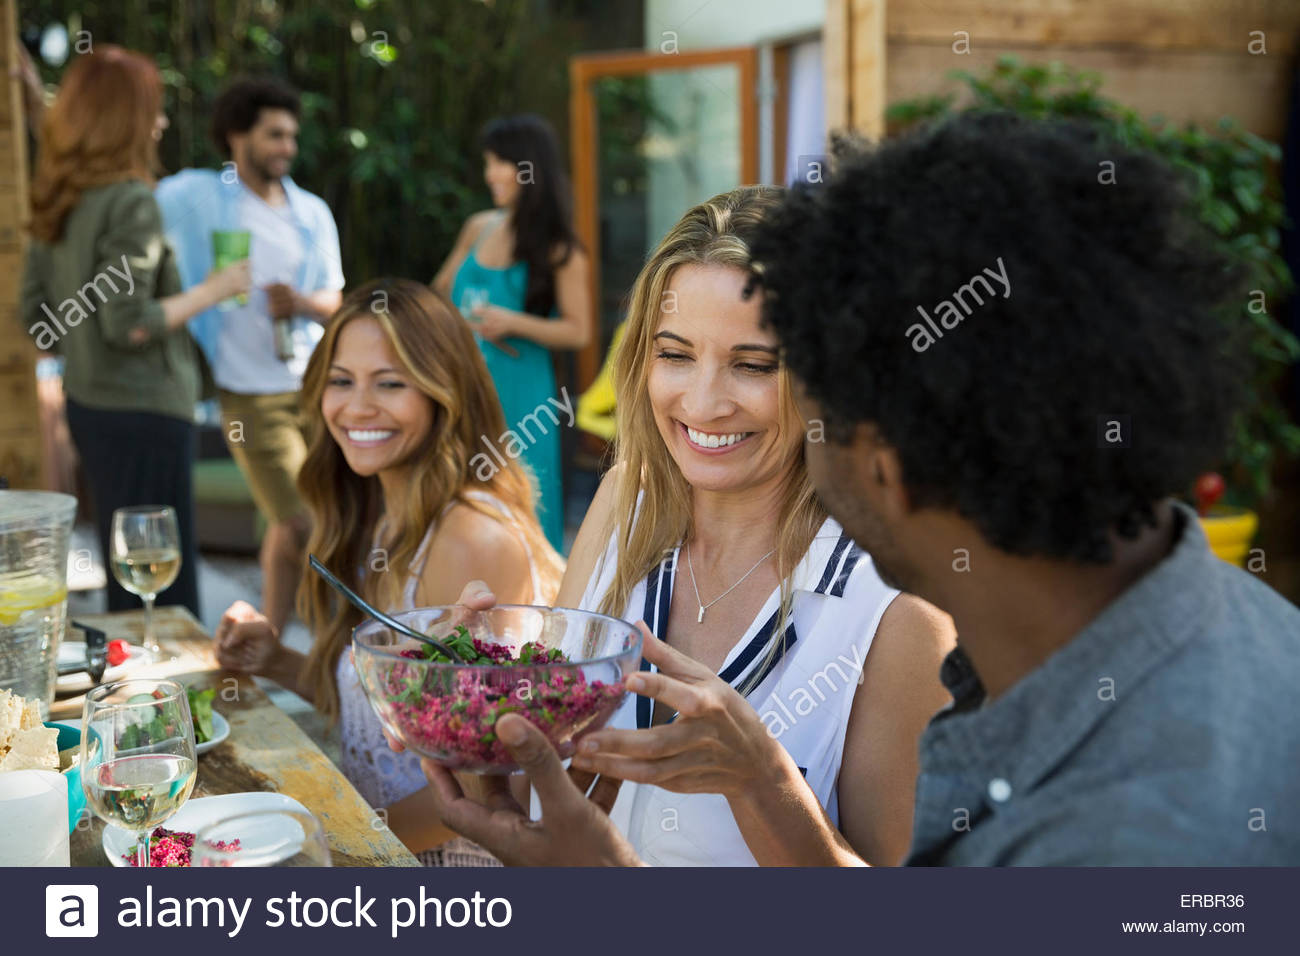 Friends eating and passing food at patio table - Stock Image